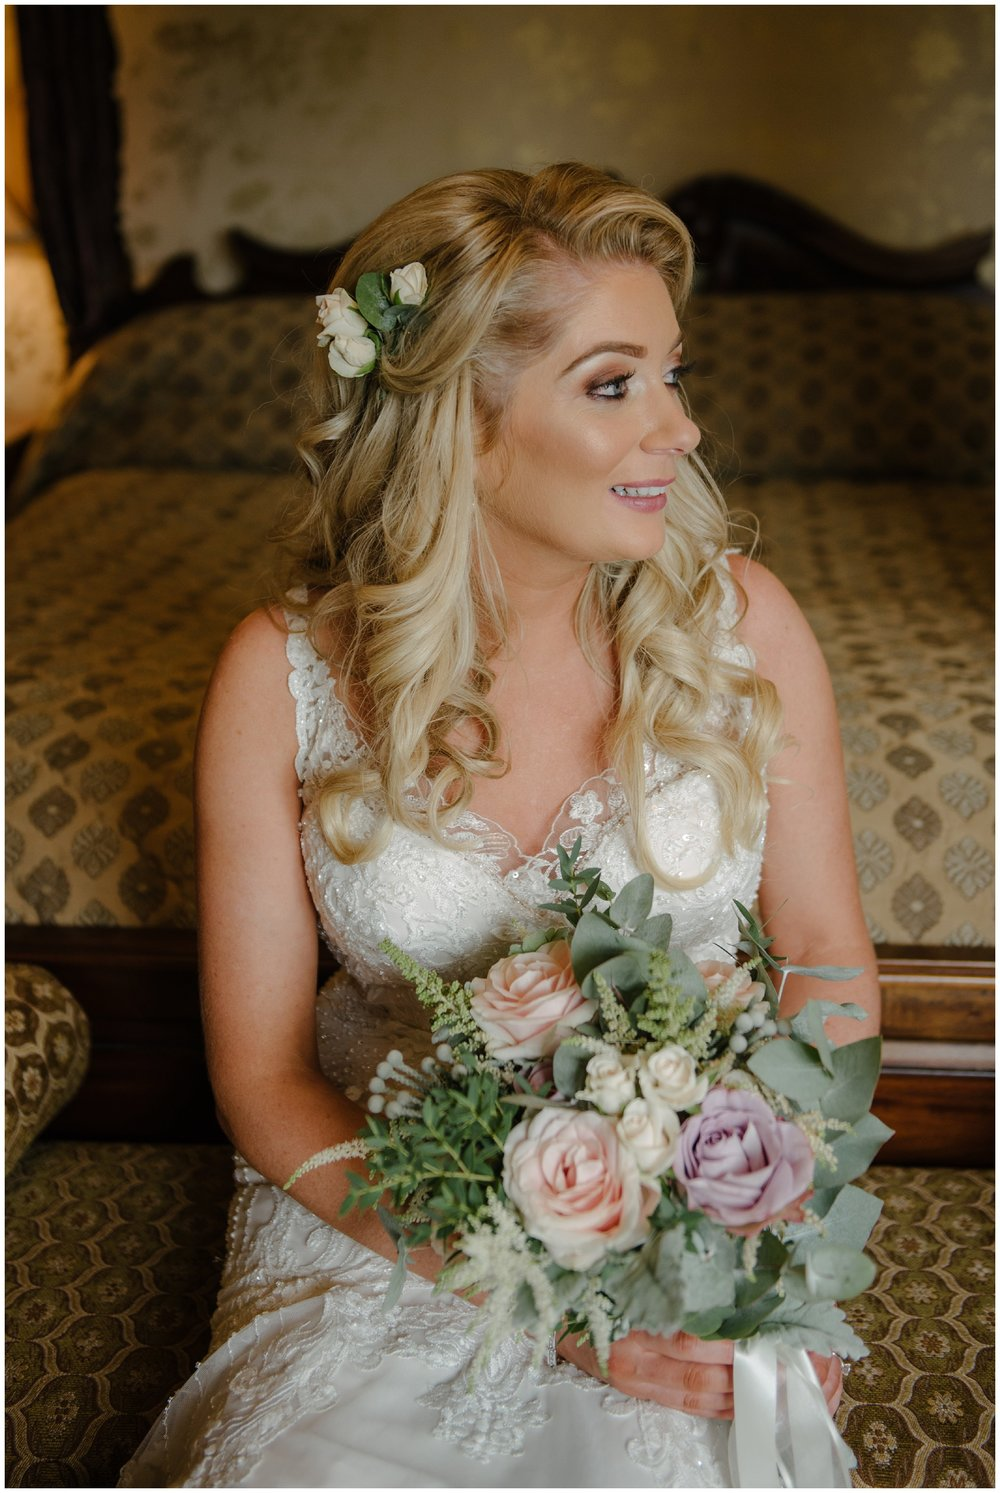 louise_keith_lough_erne_wedding_jude_browne_photography_0010.jpg